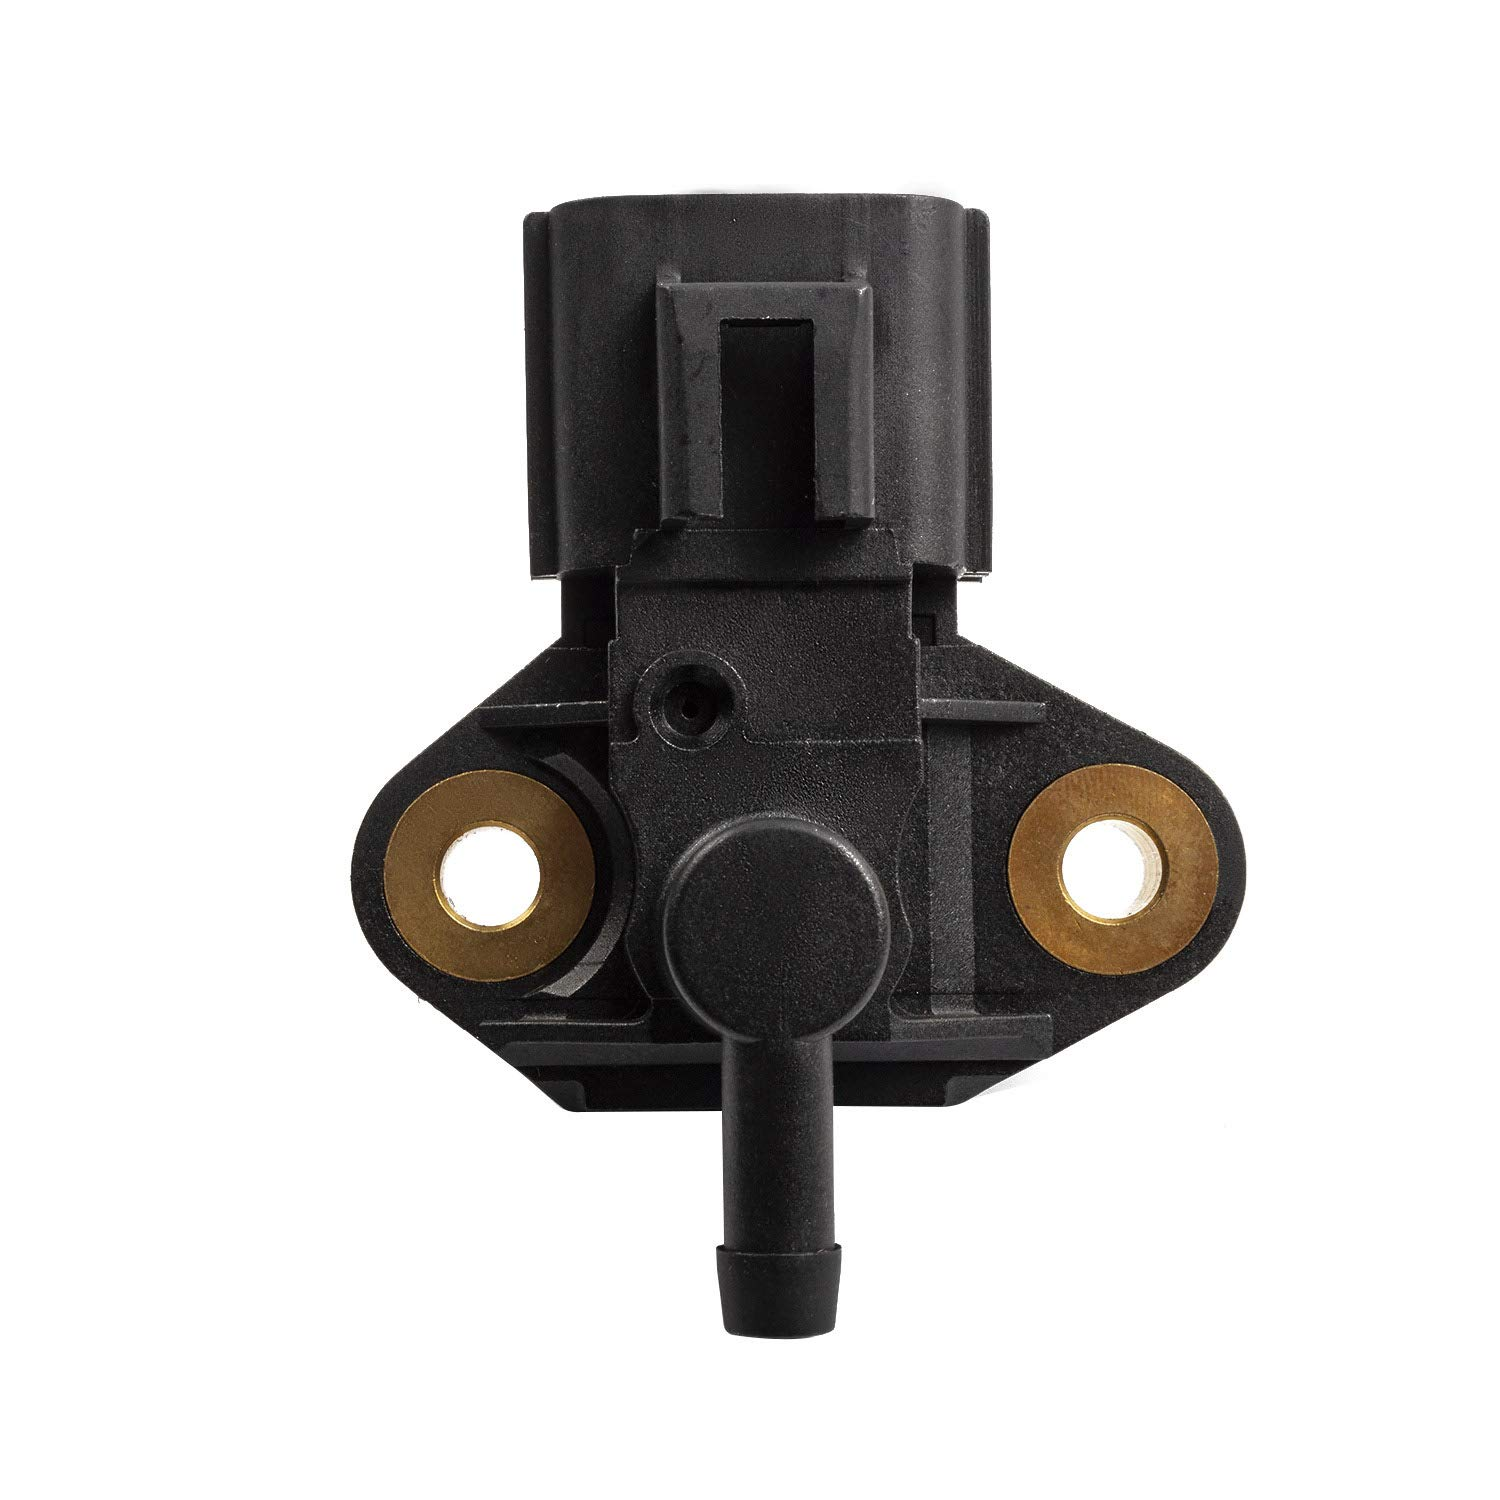 Fuel Injection Pressure Sensor 3F2Z9-G756-AC 3F2E-9G756-AA for Ford F-150 F-250 Super Duty Lincoln Fuel Injection Rail Pressure Sensor-1 Year Warranty HONORY USA